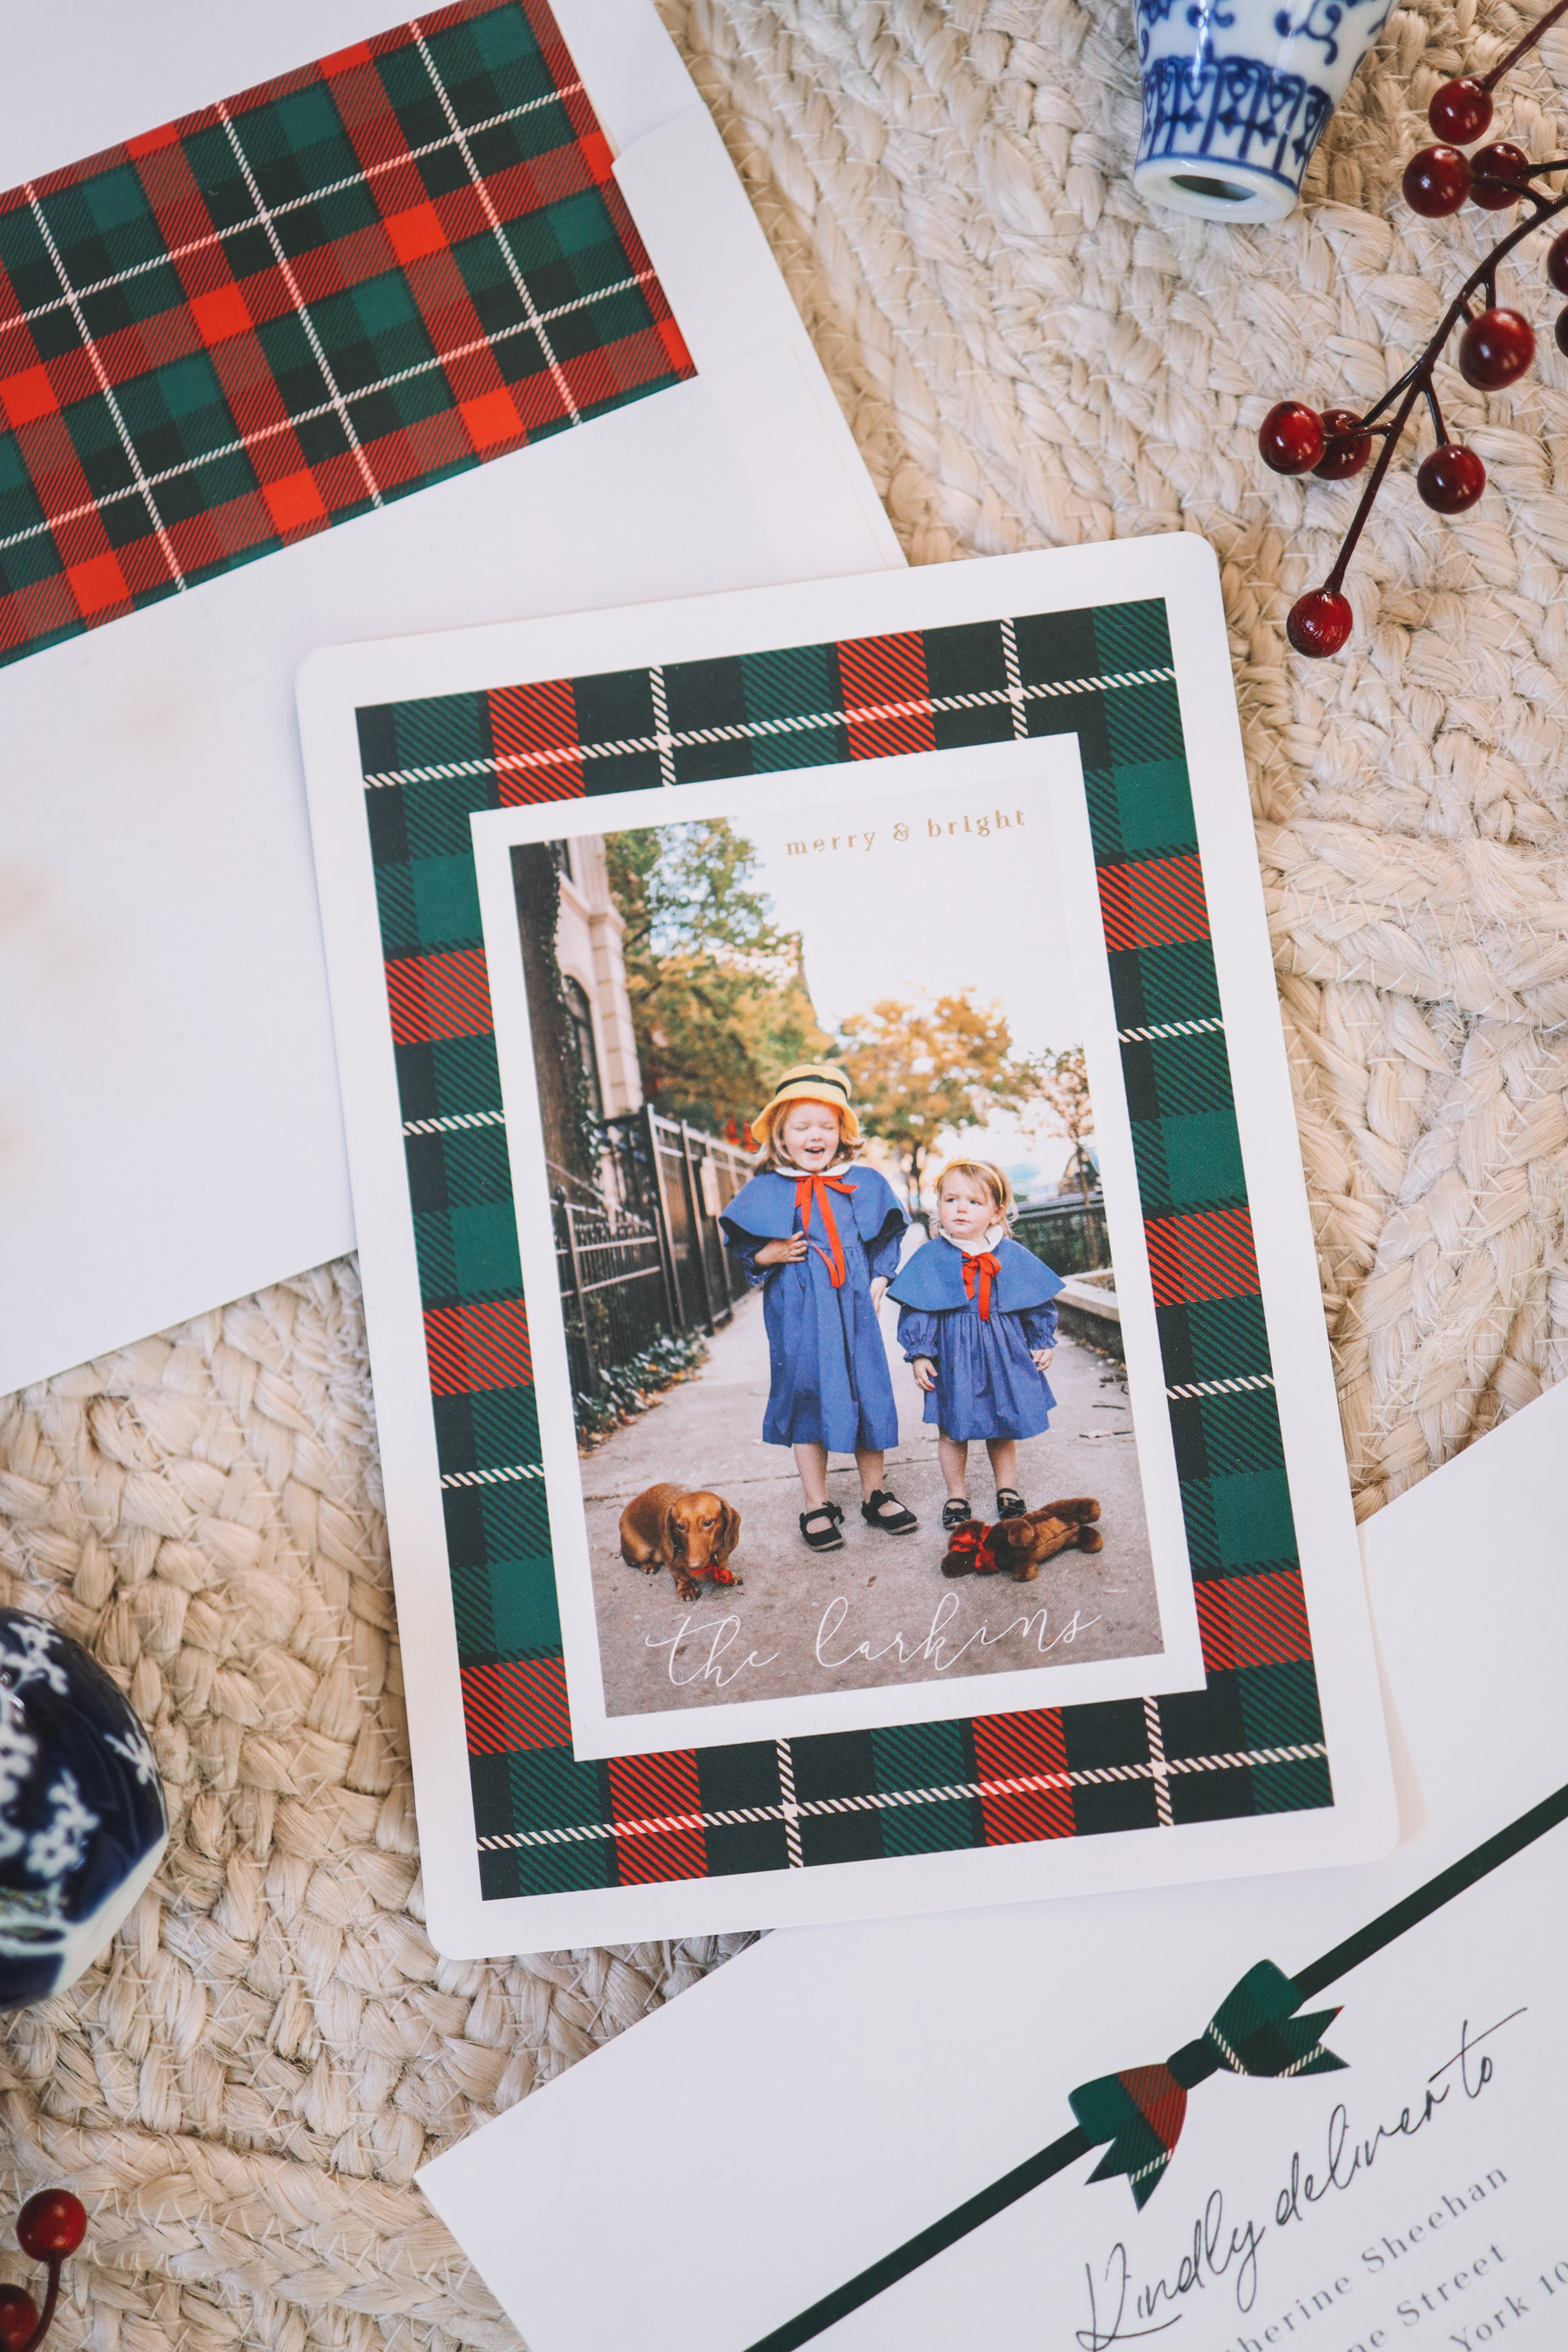 minted customized cards